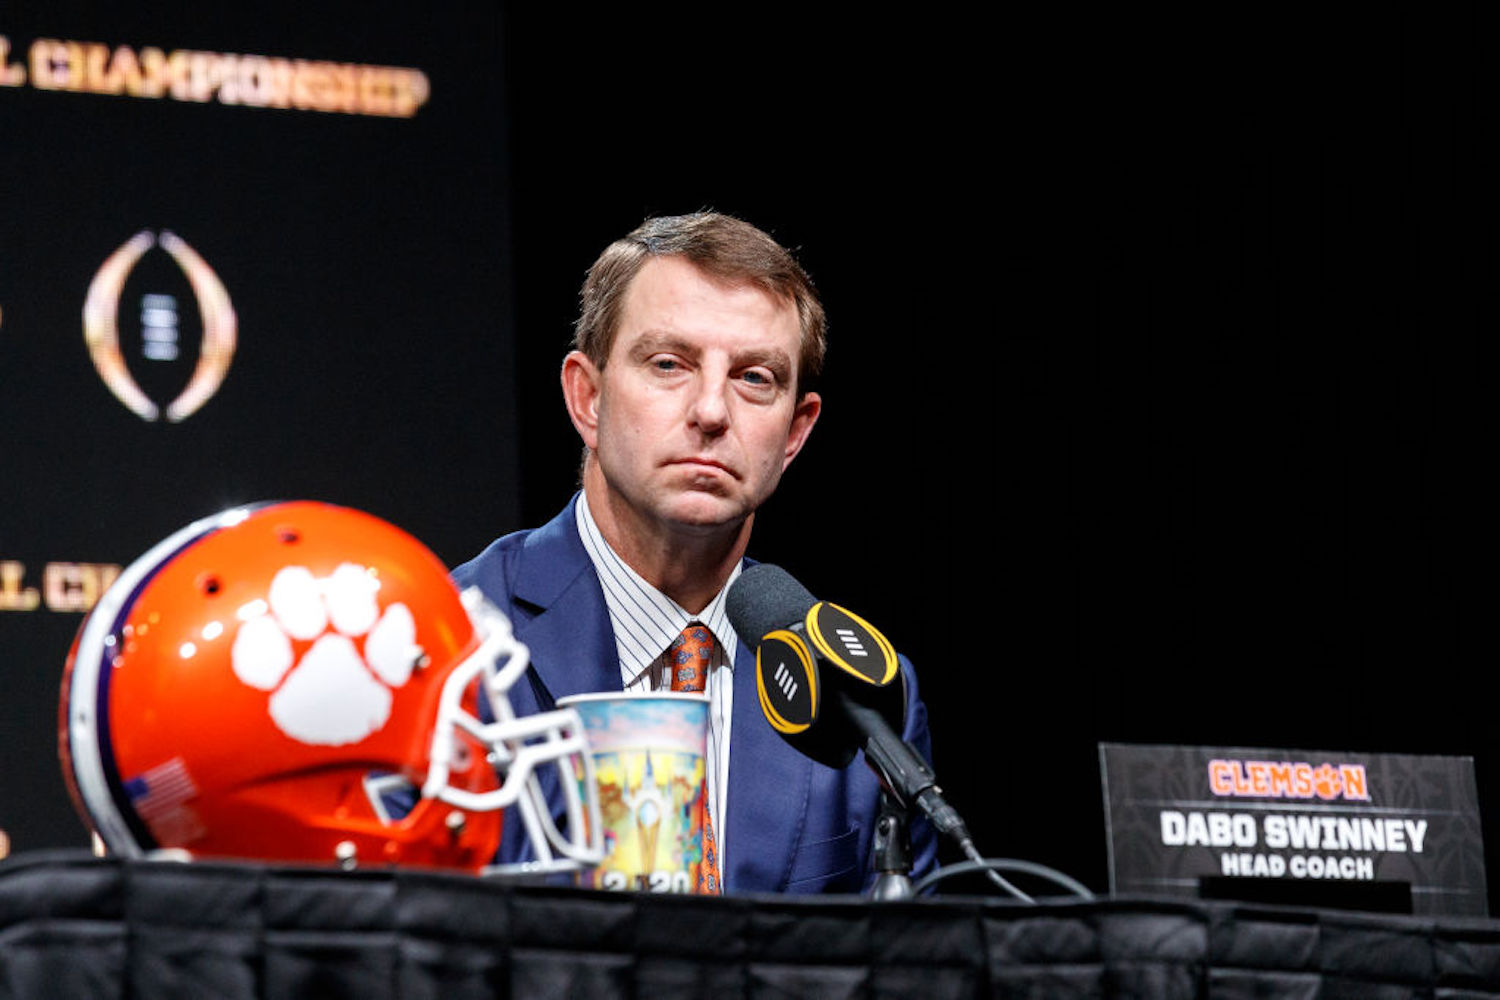 Clemson has been a virtual lock to make the College Football Playoff in recent years, but their road to the 2020 CFP just got a lot tougher.